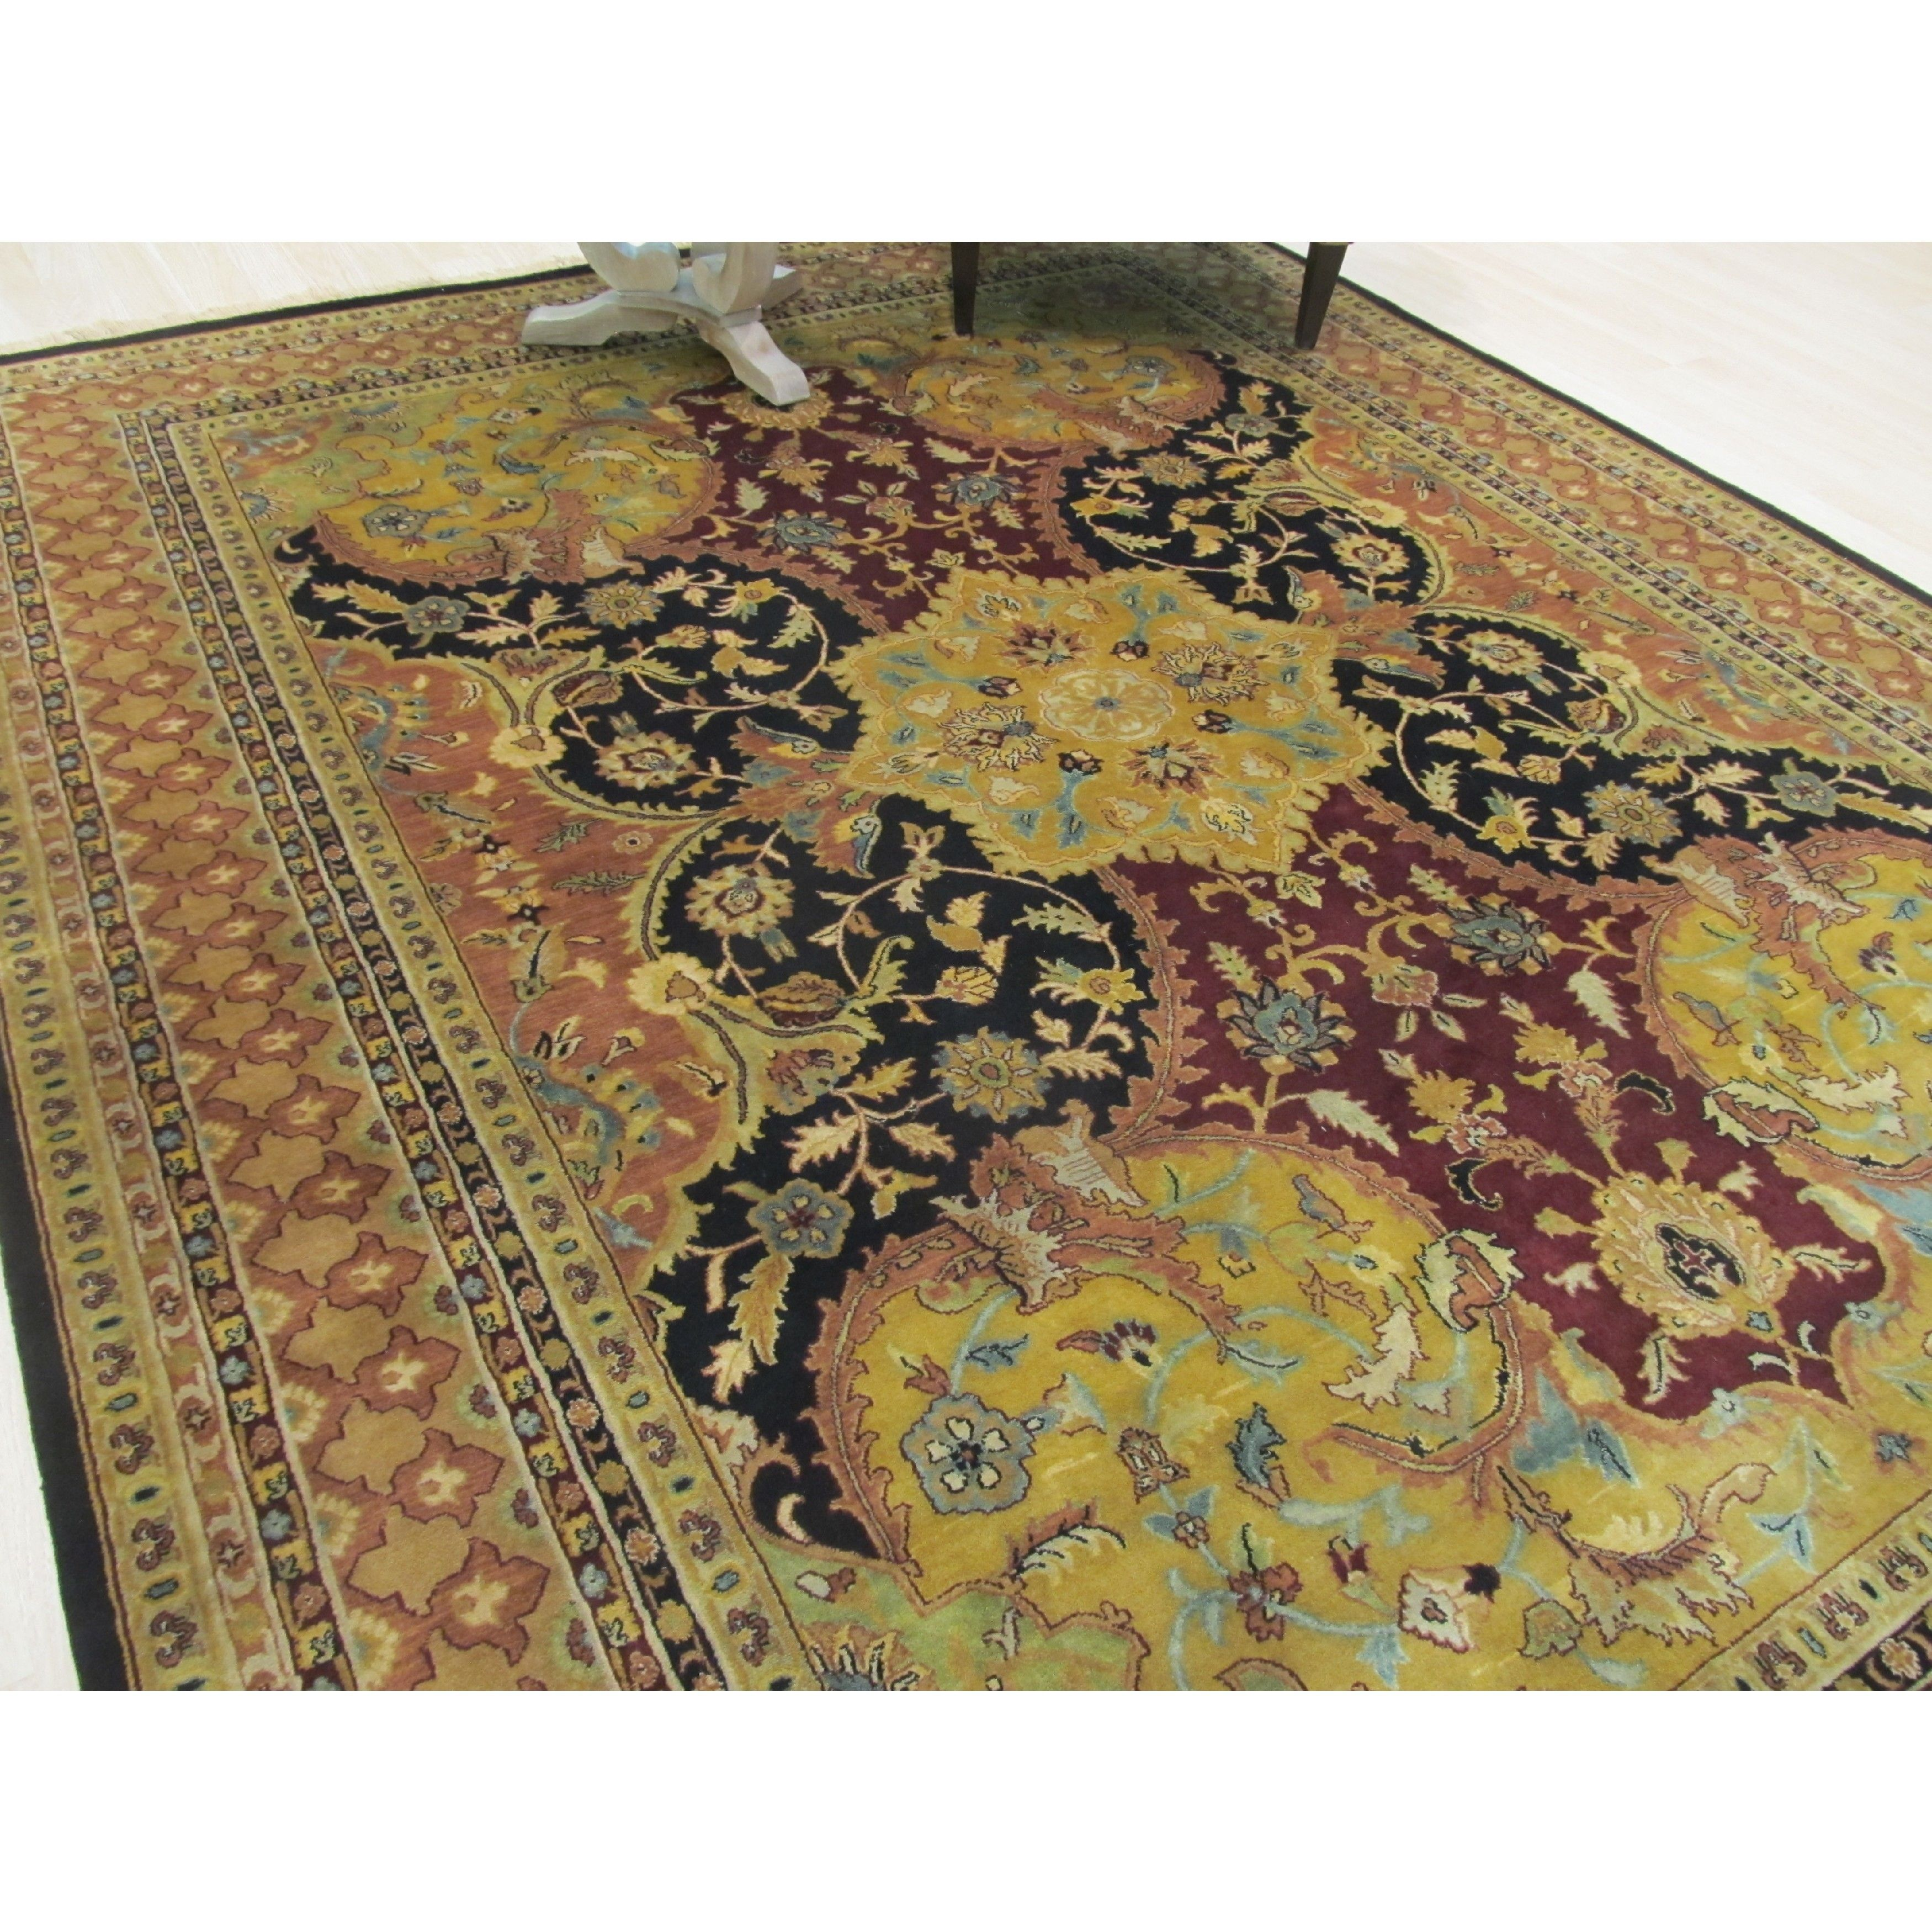 Polonaise antique oriental rugs - Eorc Eastern Oriental Rug Center Hand Knotted New Zealand Wool Black Polonaise Rug 4 X 6 4 X 6 Size 4 X 6